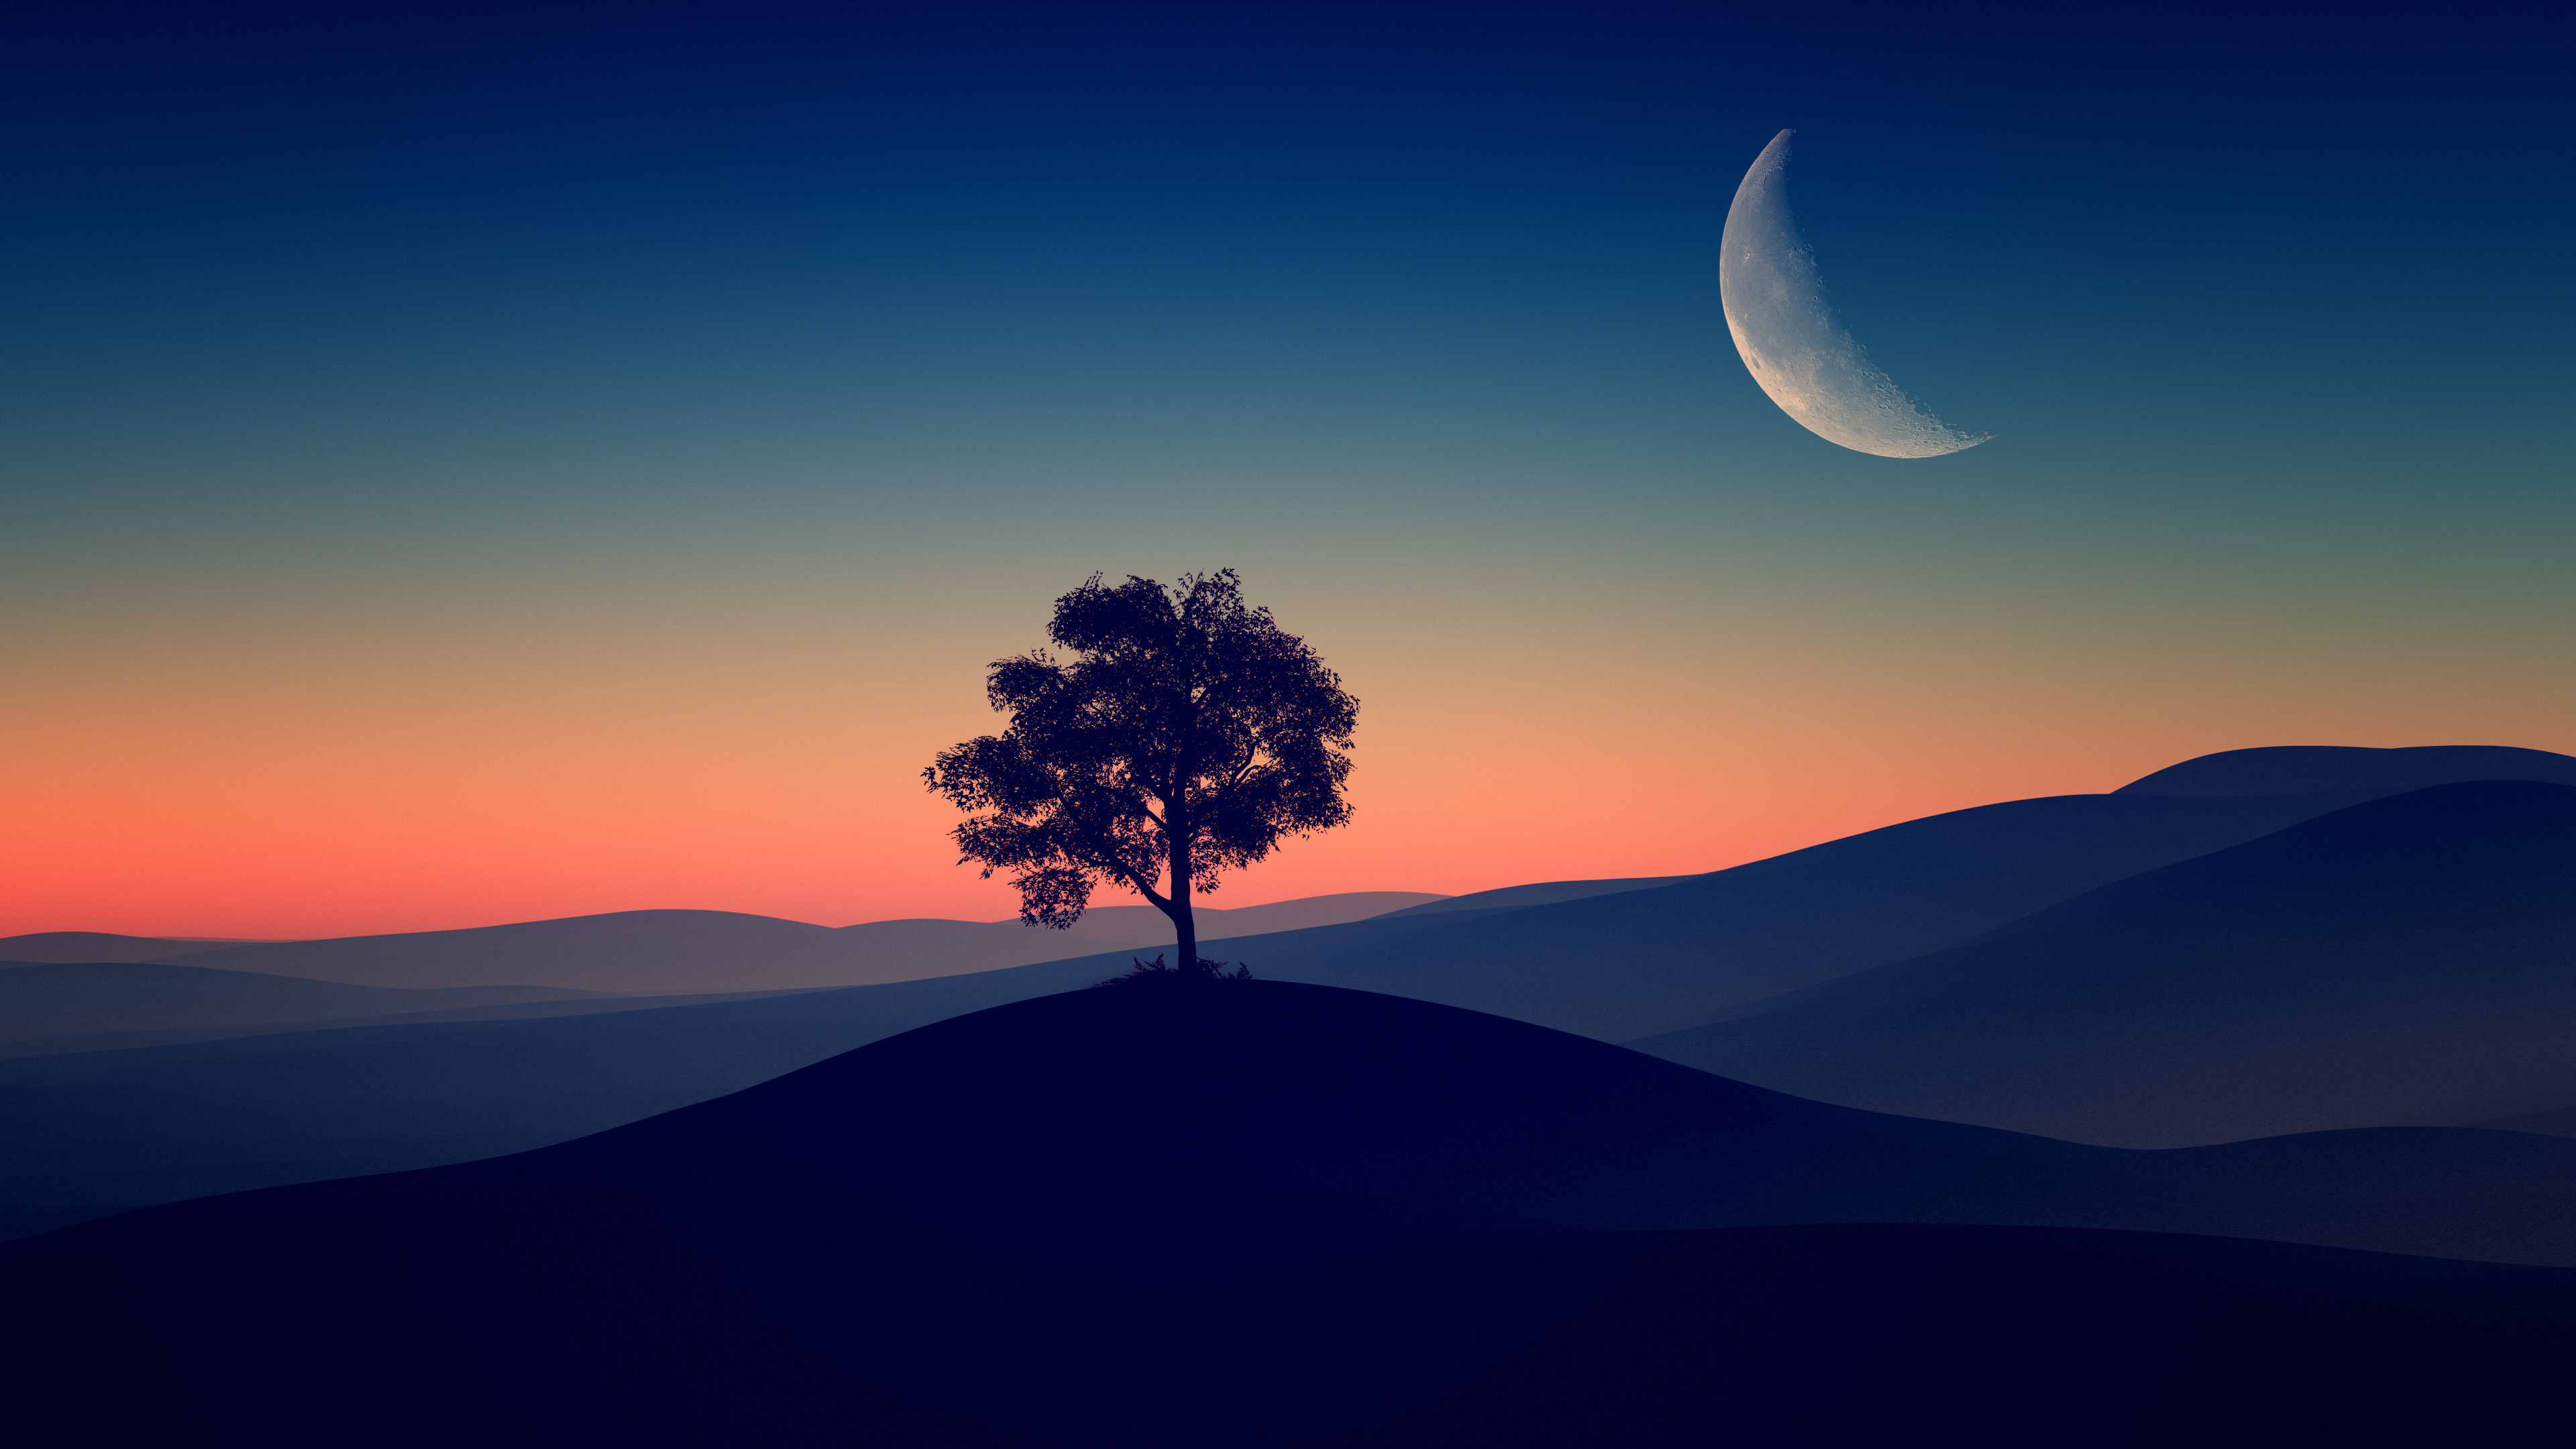 Tree Alone Dark Evening 4k Hd Nature 4k Wallpapers Images Backgrounds Photos And Pictures